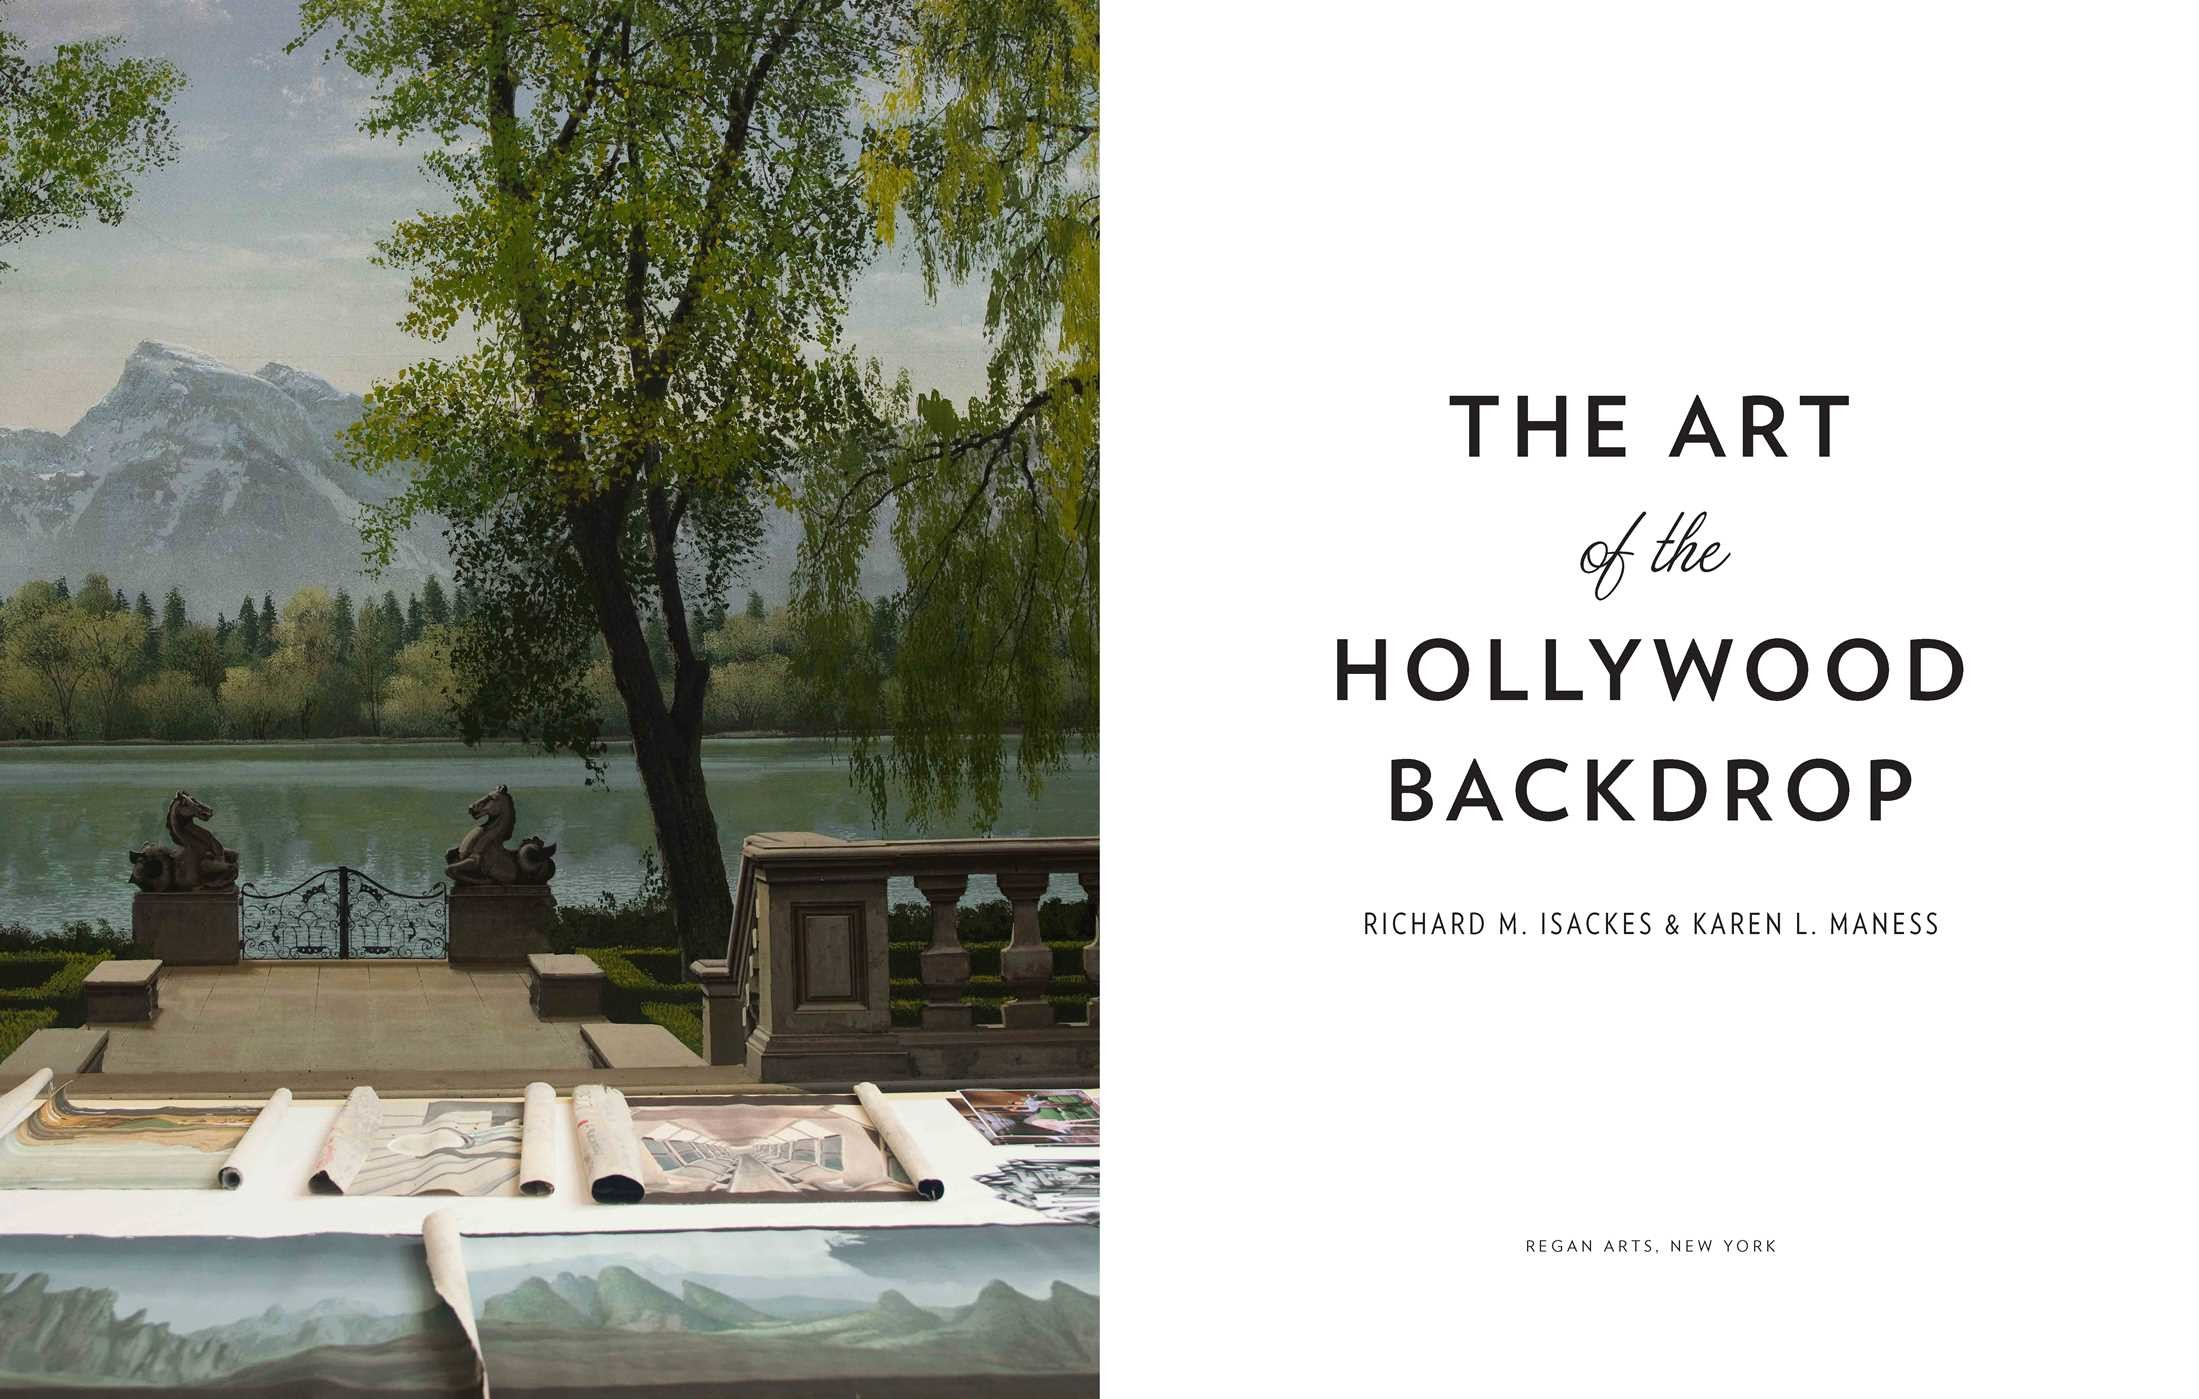 The art of the hollywood backdrop 9781941393086.in03